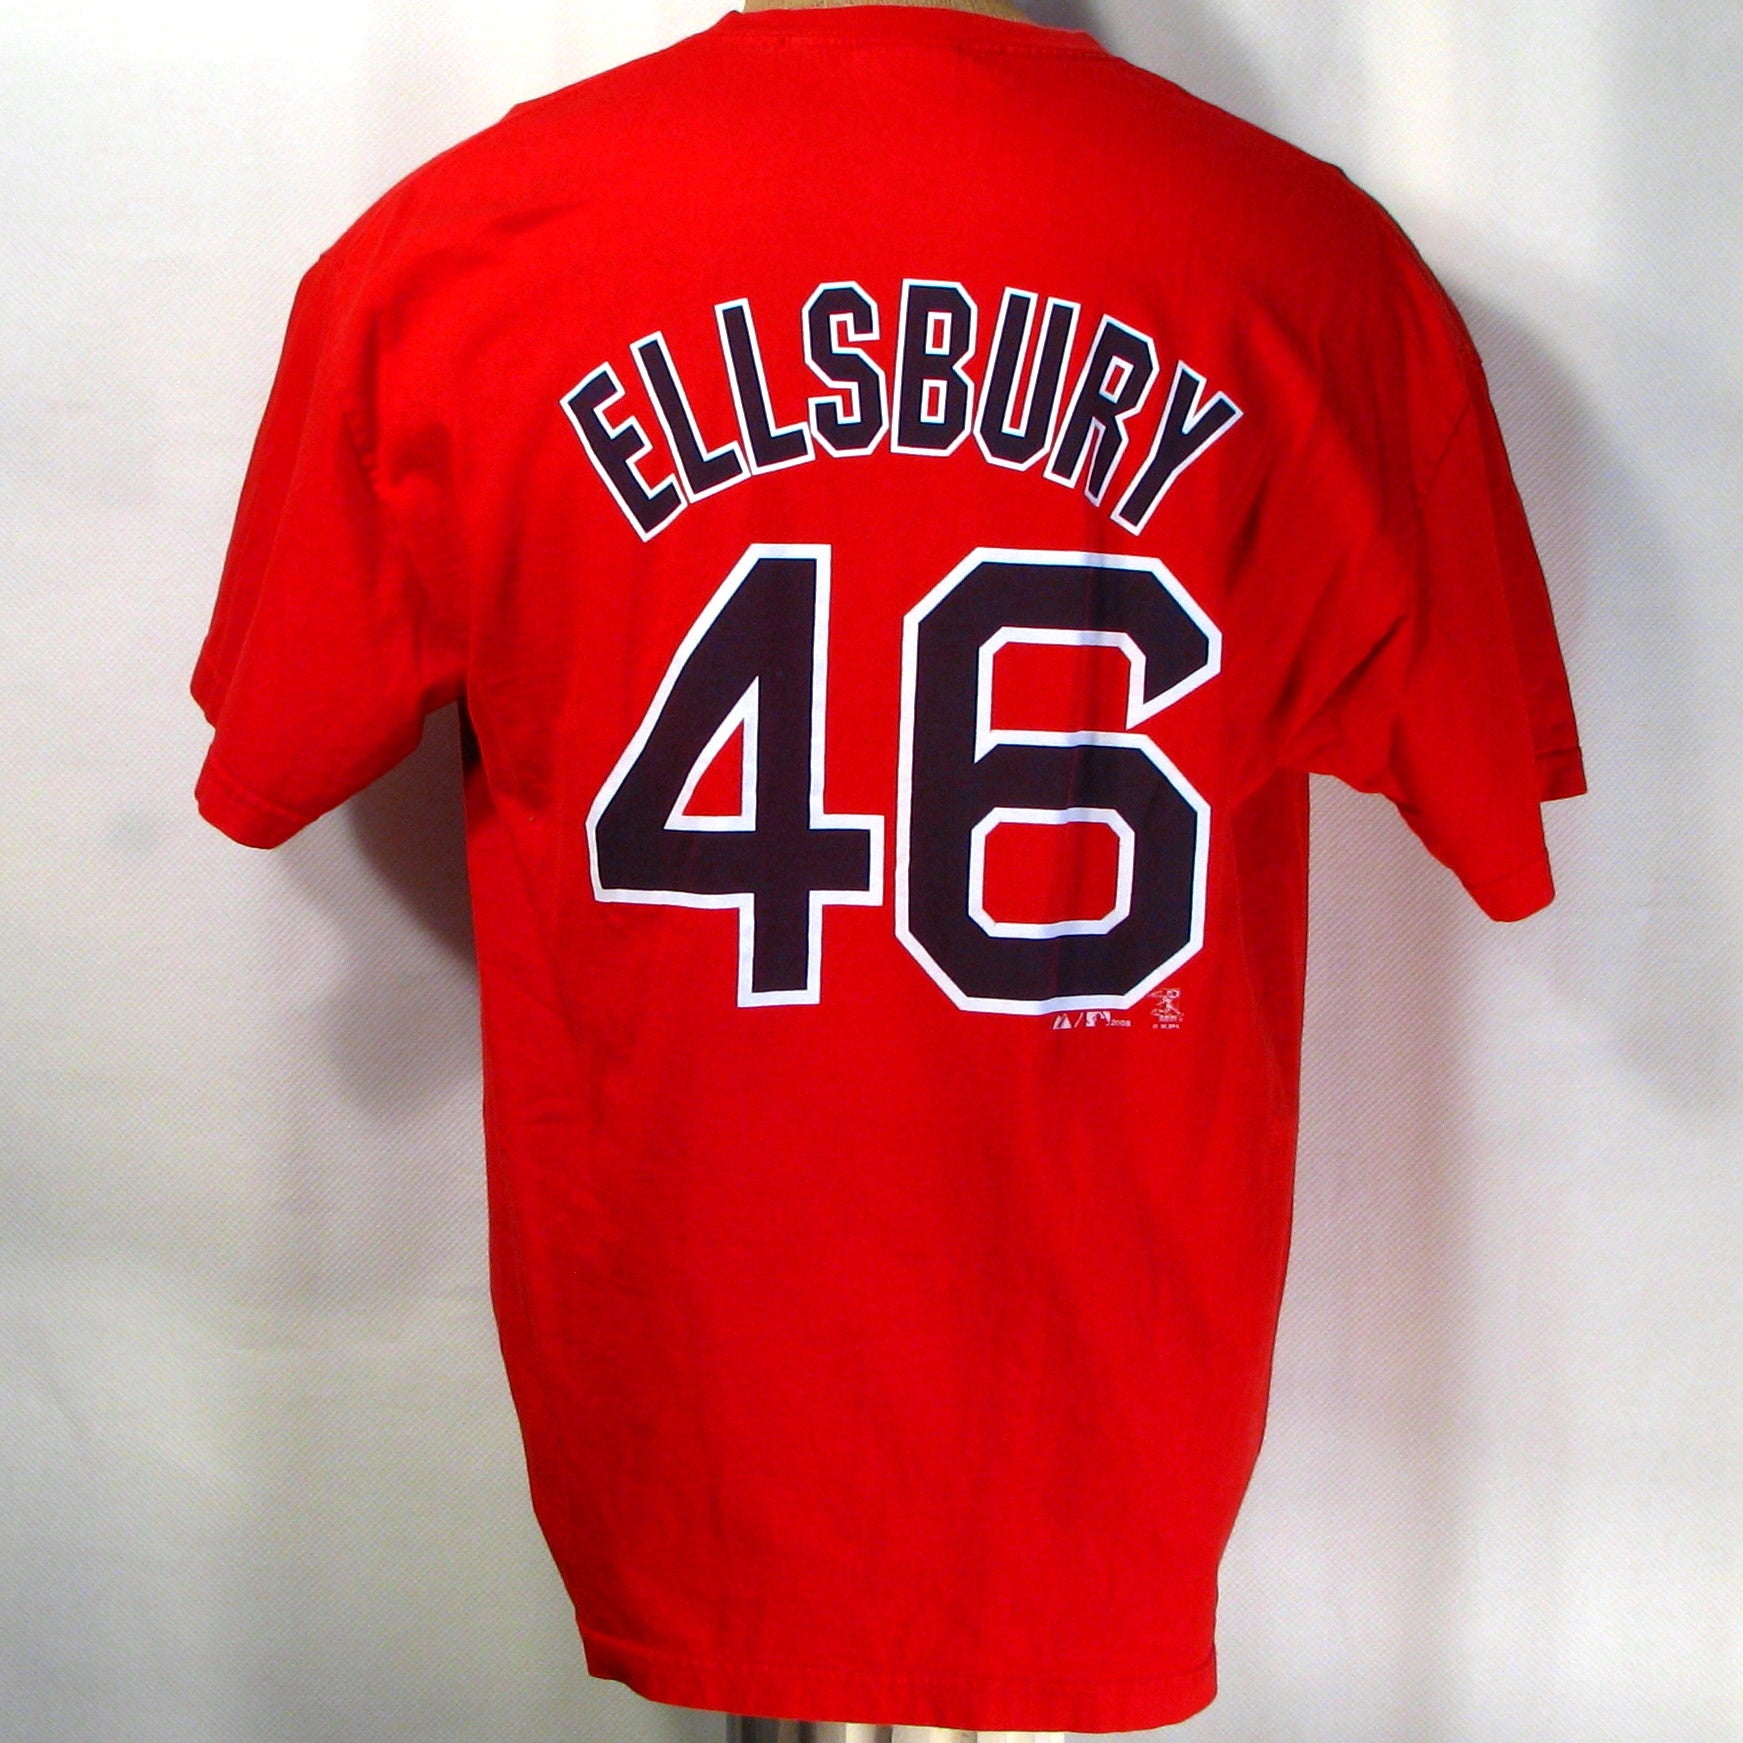 Boston Red Sox Ellsbury #46 T-Shirt